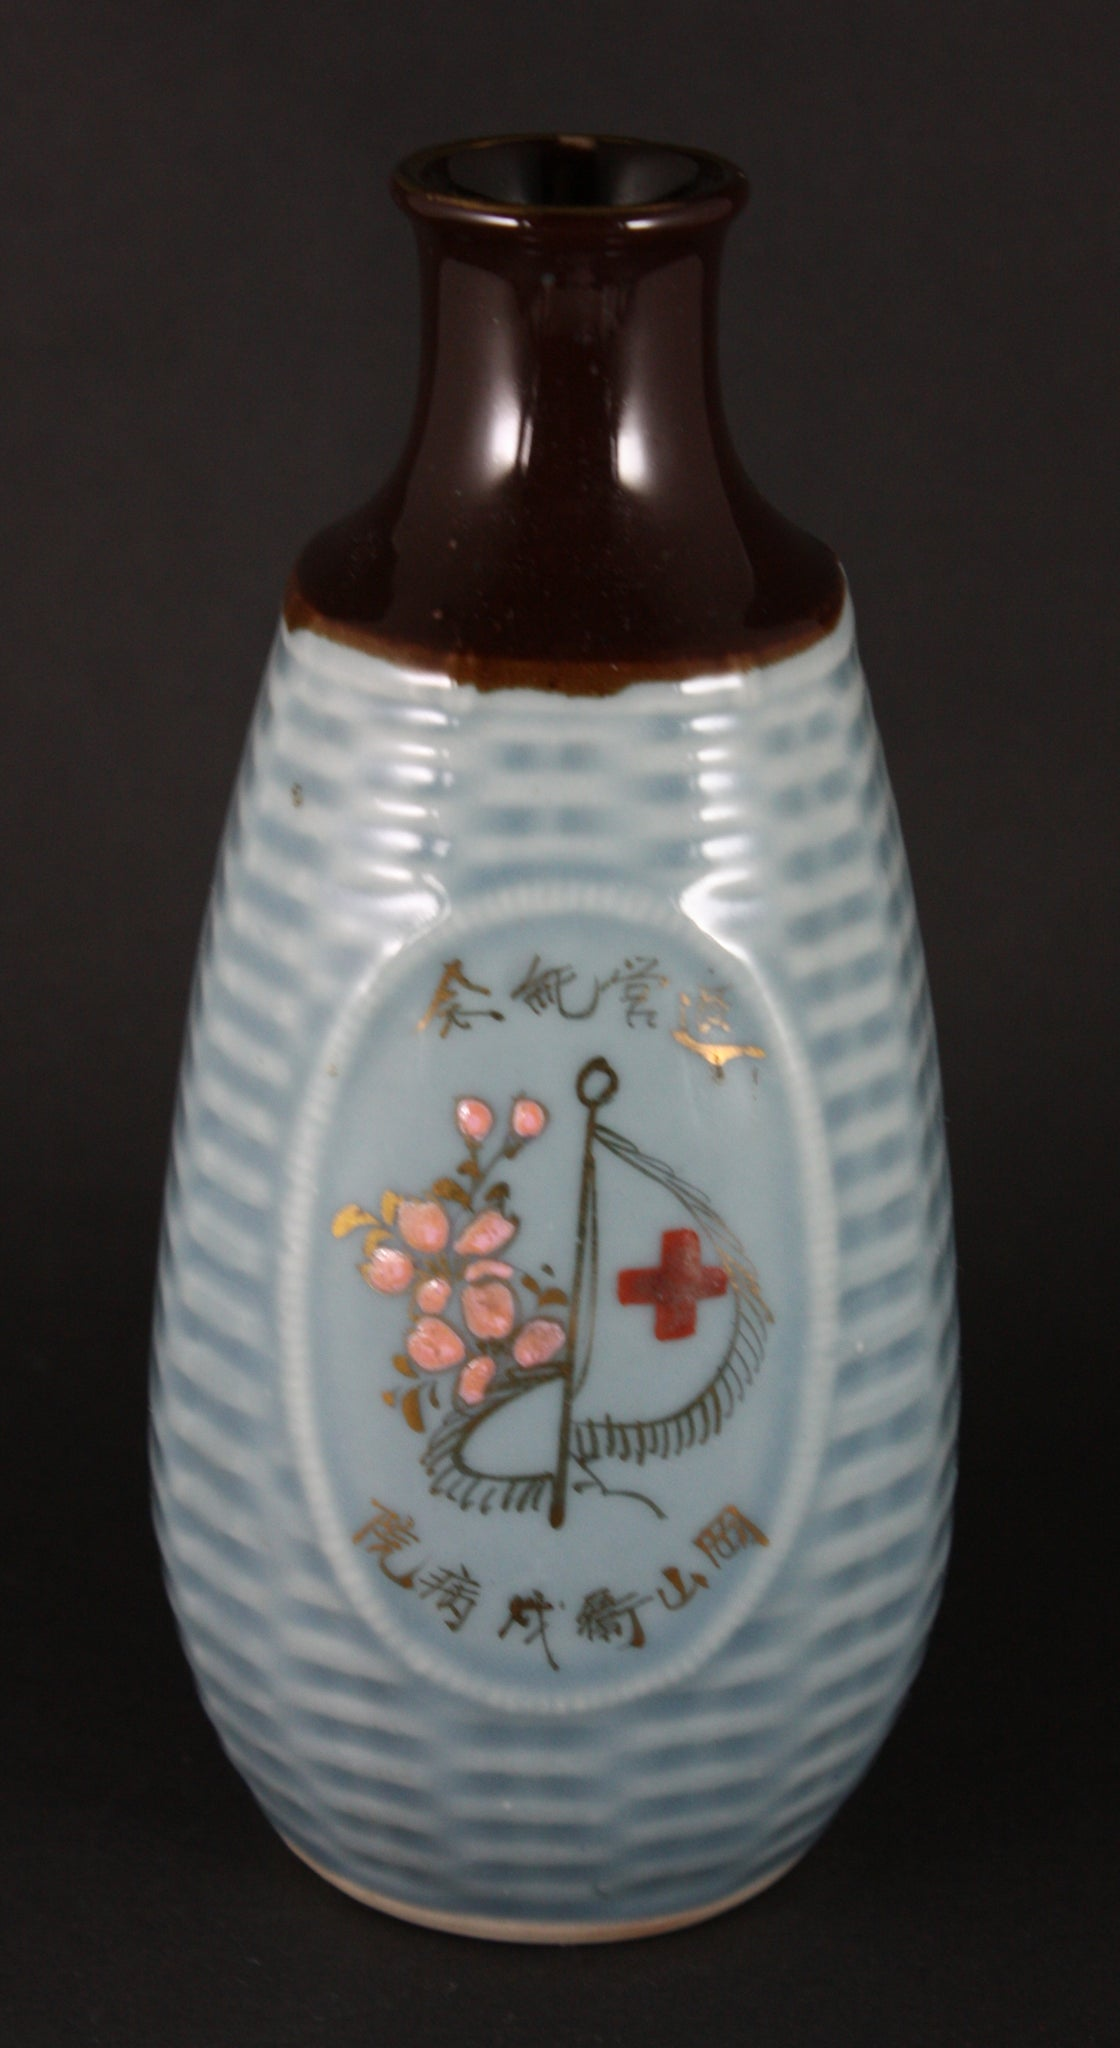 Antique Japanese Military Okayama Military Hospital Sake Bottle and Cups Set